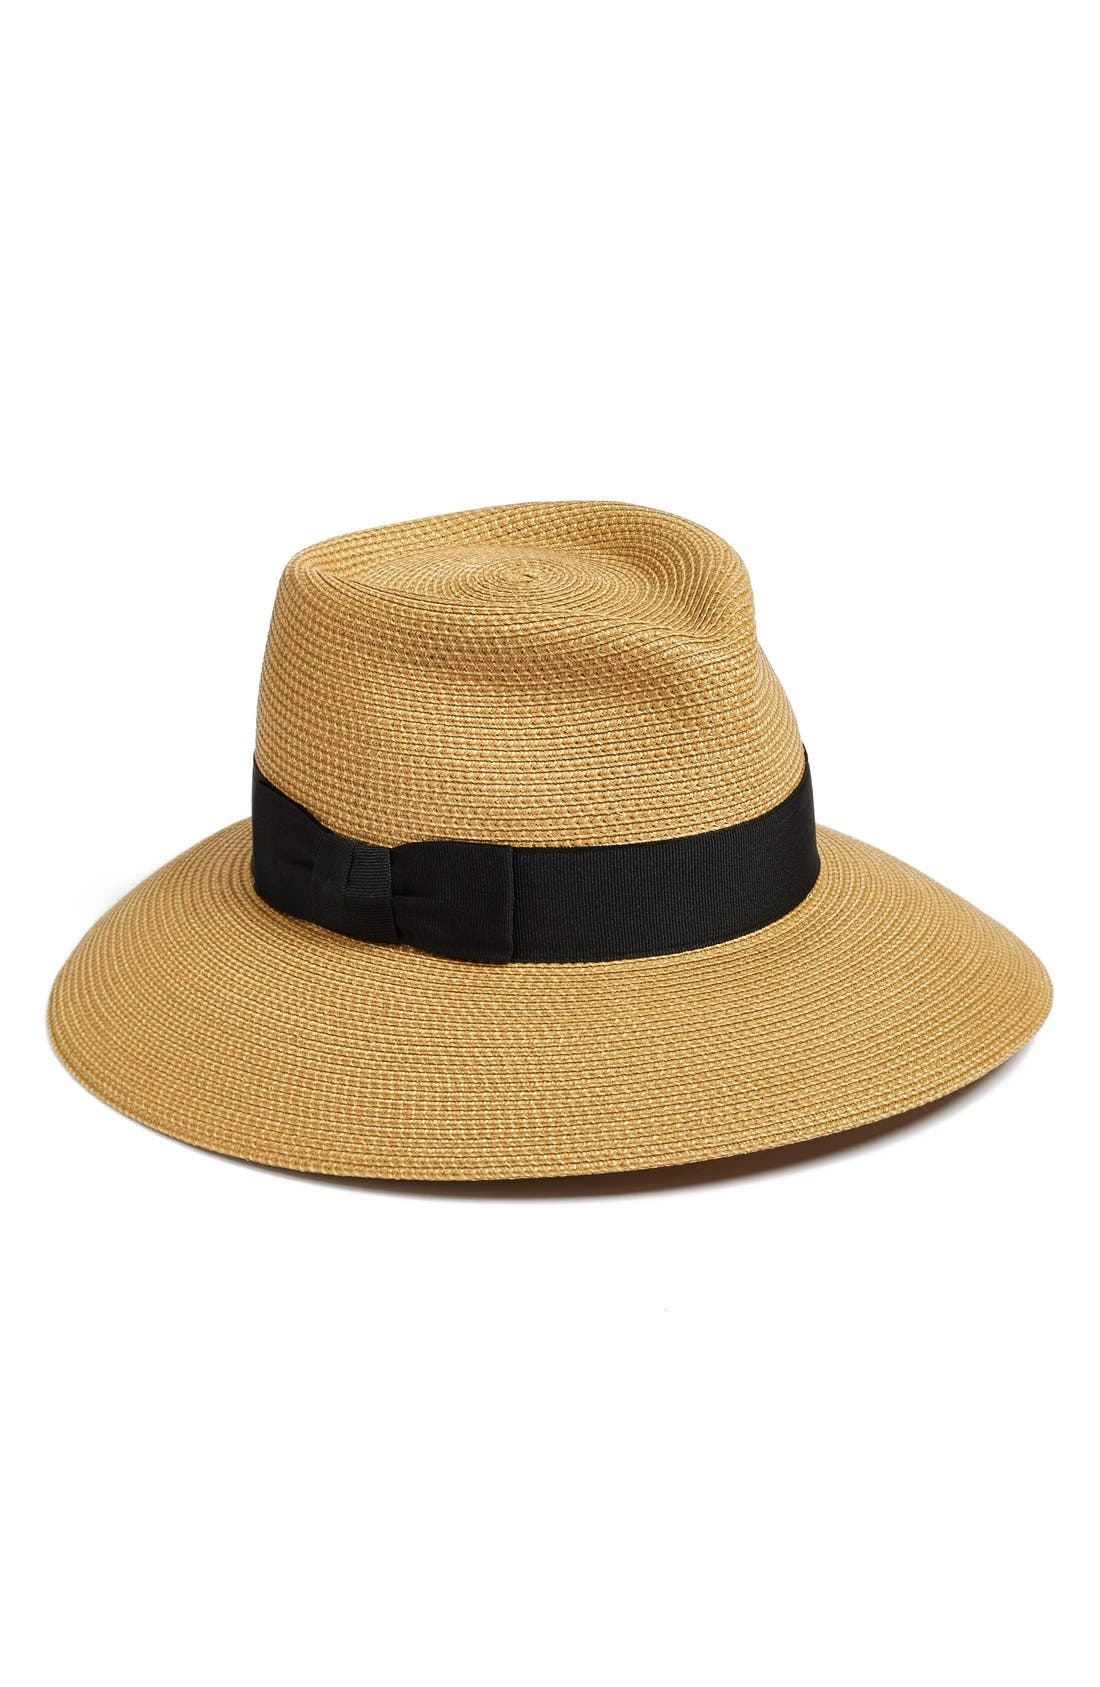 'Phoenix' Packable Fedora Sun Hat,                             Main thumbnail 1, color,                             NATURAL/ BLACK